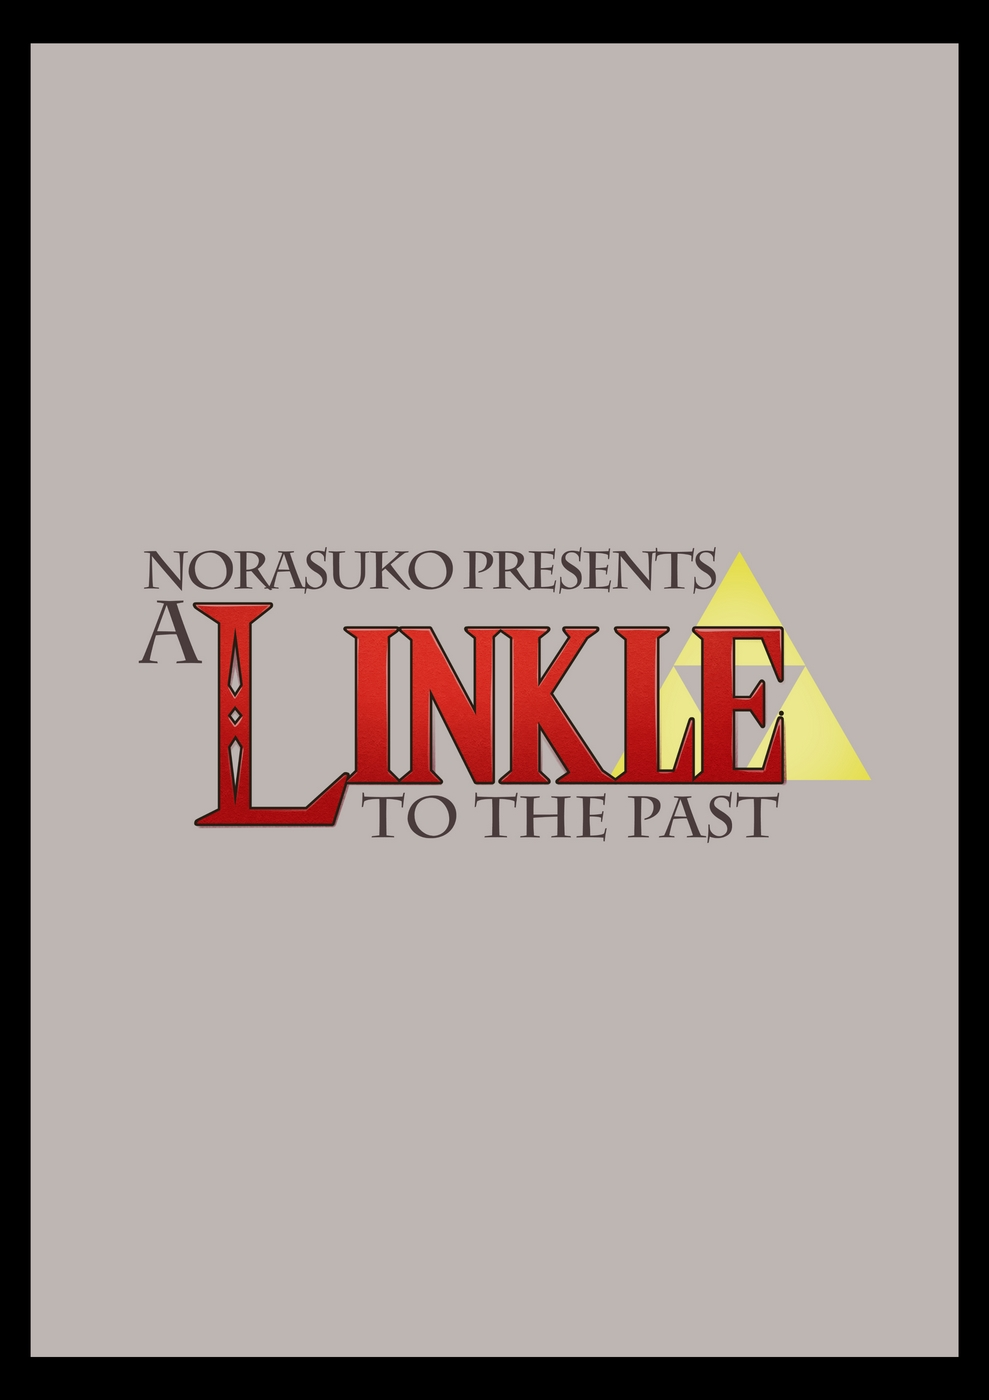 A Linkle to the Past (The Legend of Zelda)